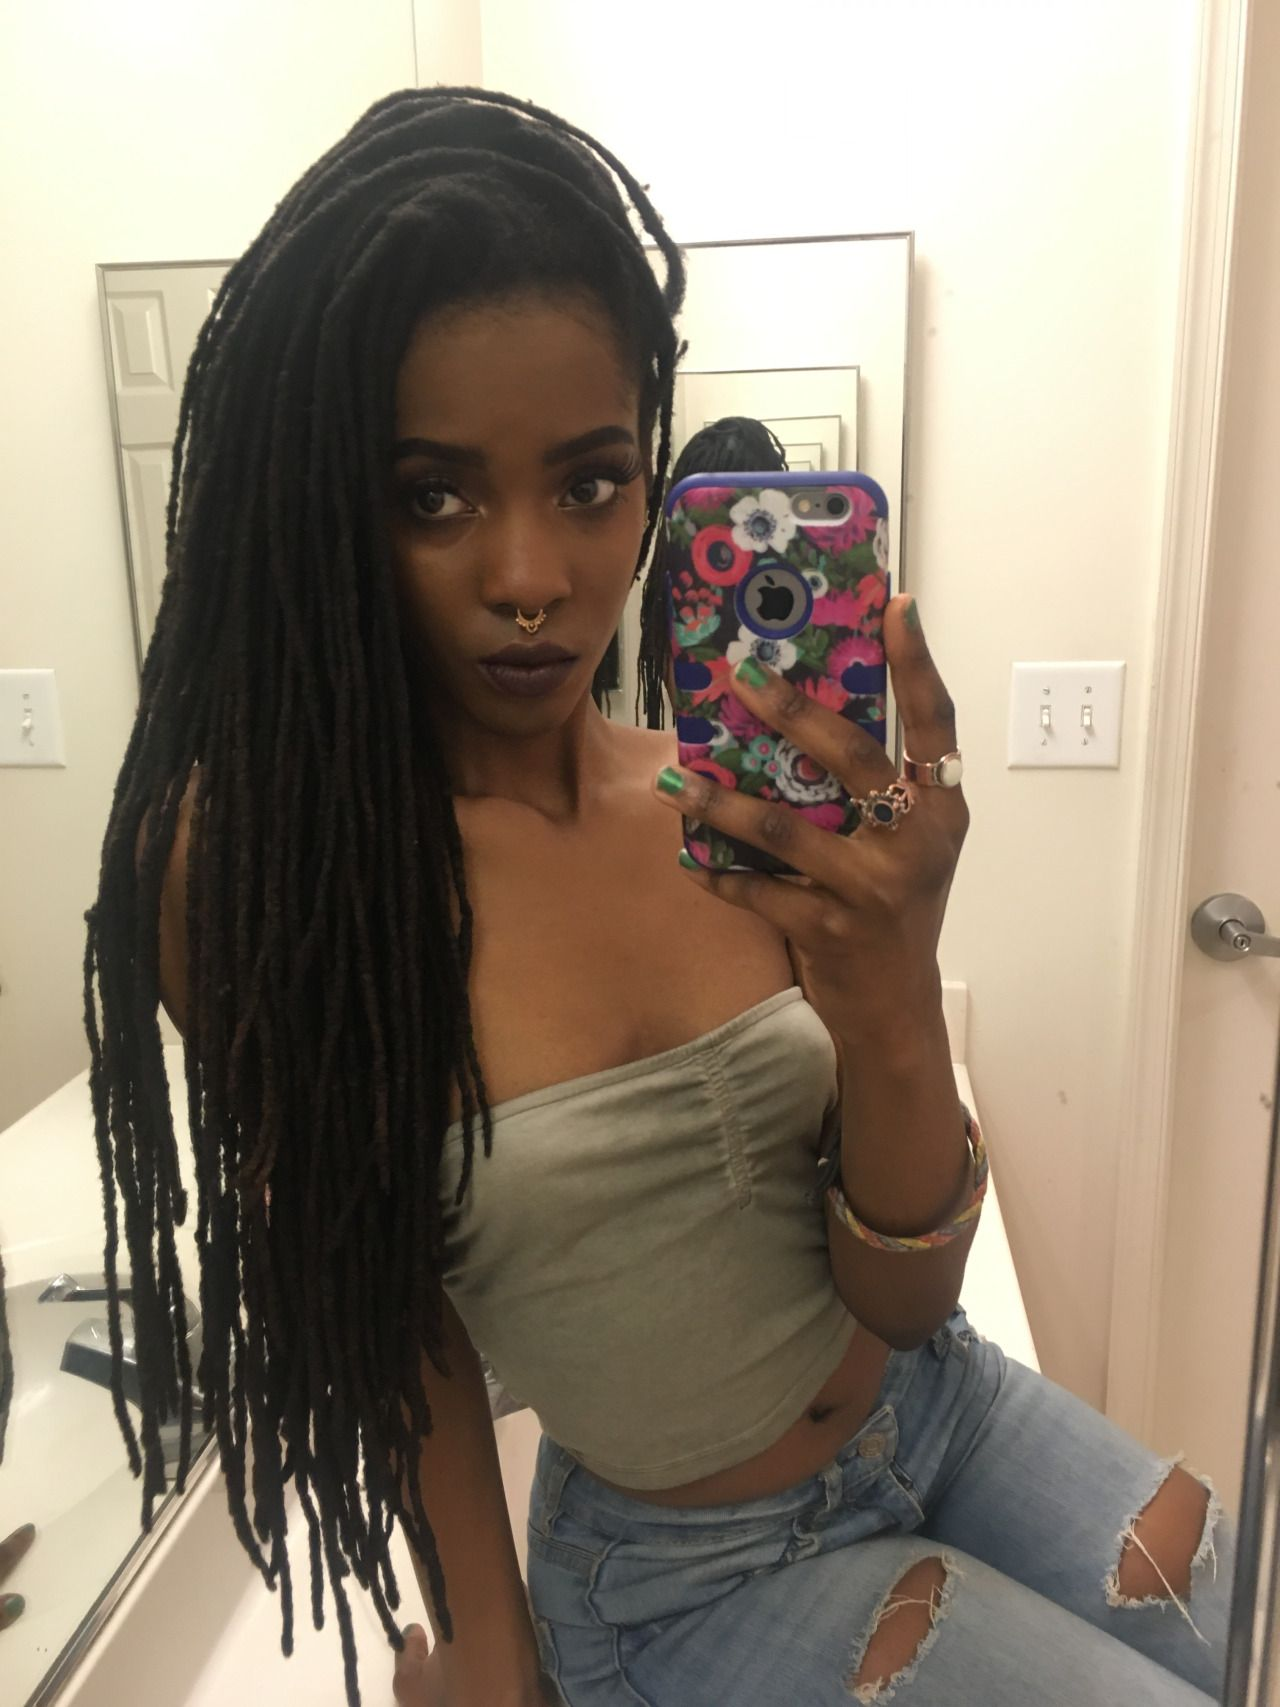 Chief Keef Hairstyle Name Queen In Dashiki With Locs Dreads Locs Dreadlocks Pinterest